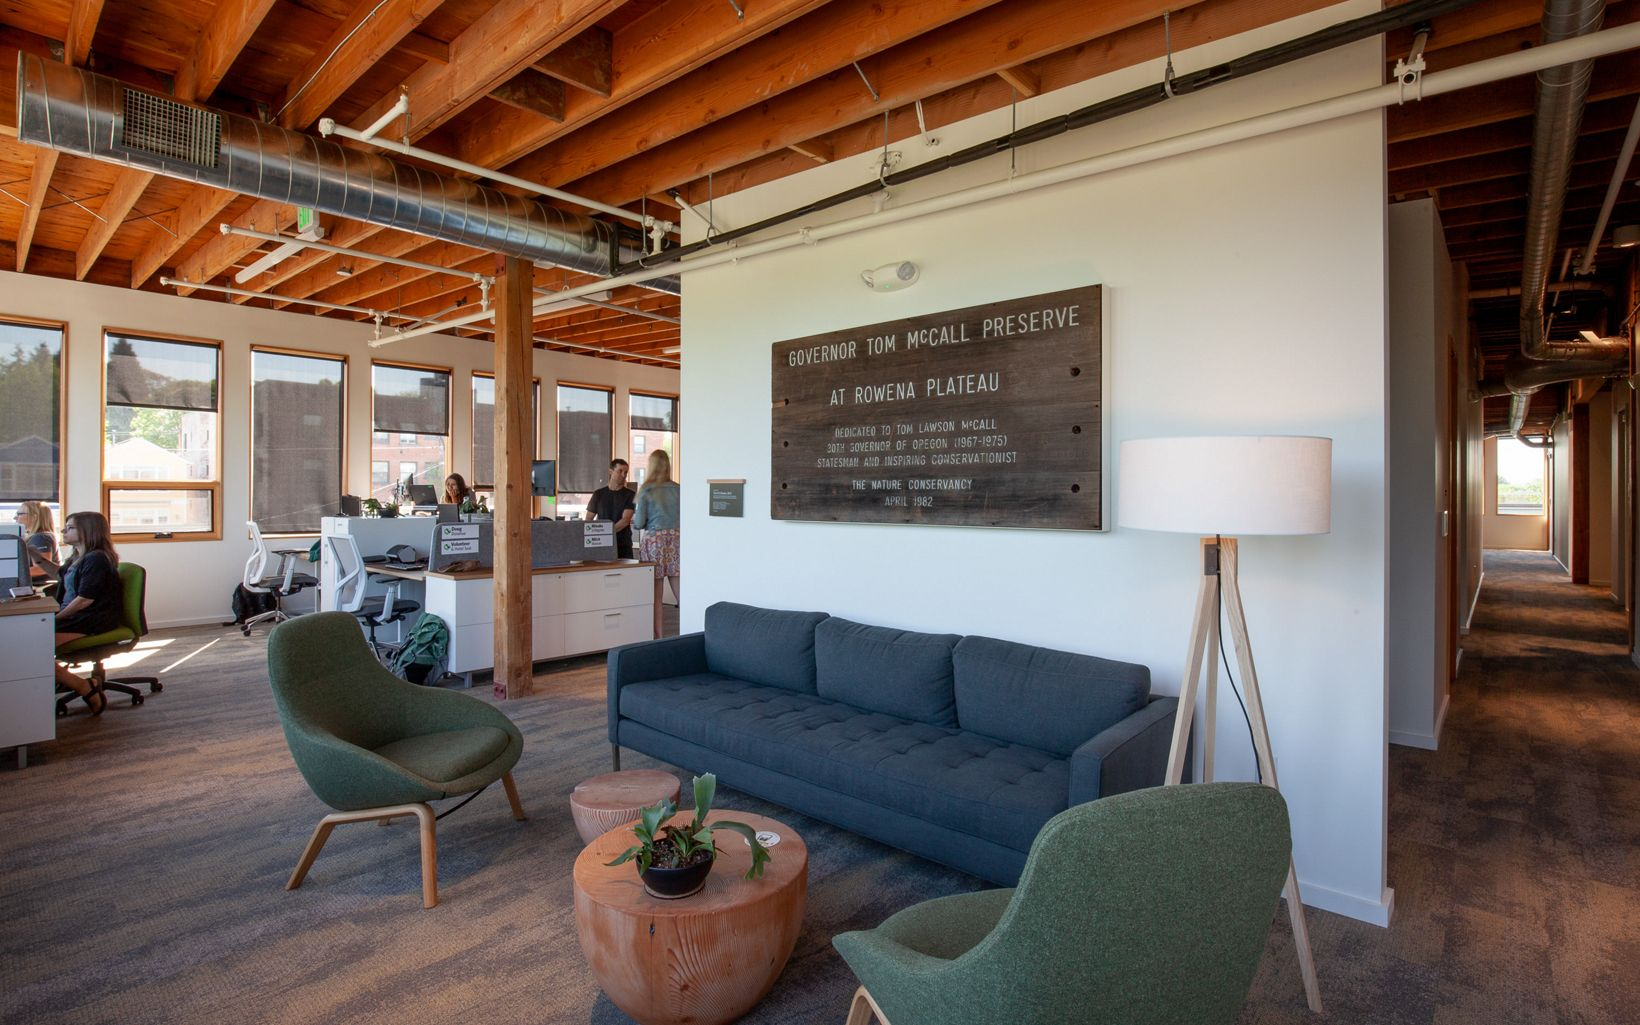 Staff and guests find multiple areas to work and meet. This lounge area, adjacent to the open workspace, features retired signage from TNC's Tom McCall Preserve near Rowena.